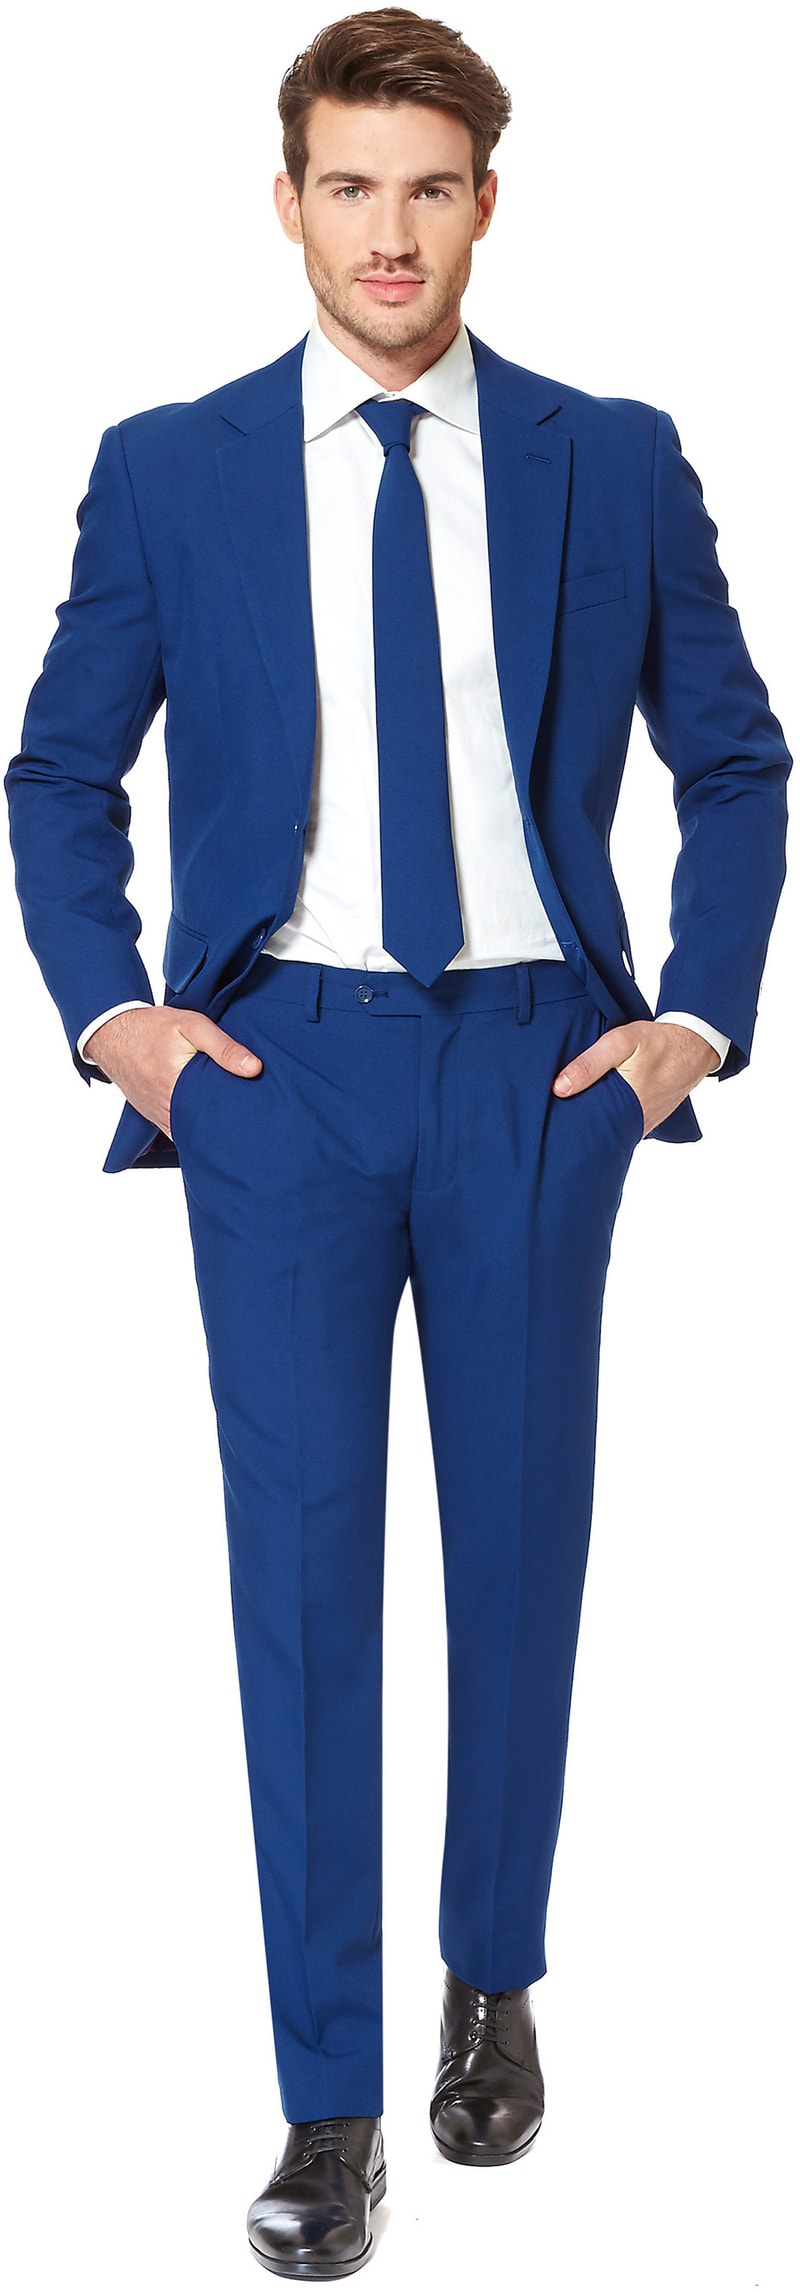 OppoSuits Navy Royale Suit photo 0